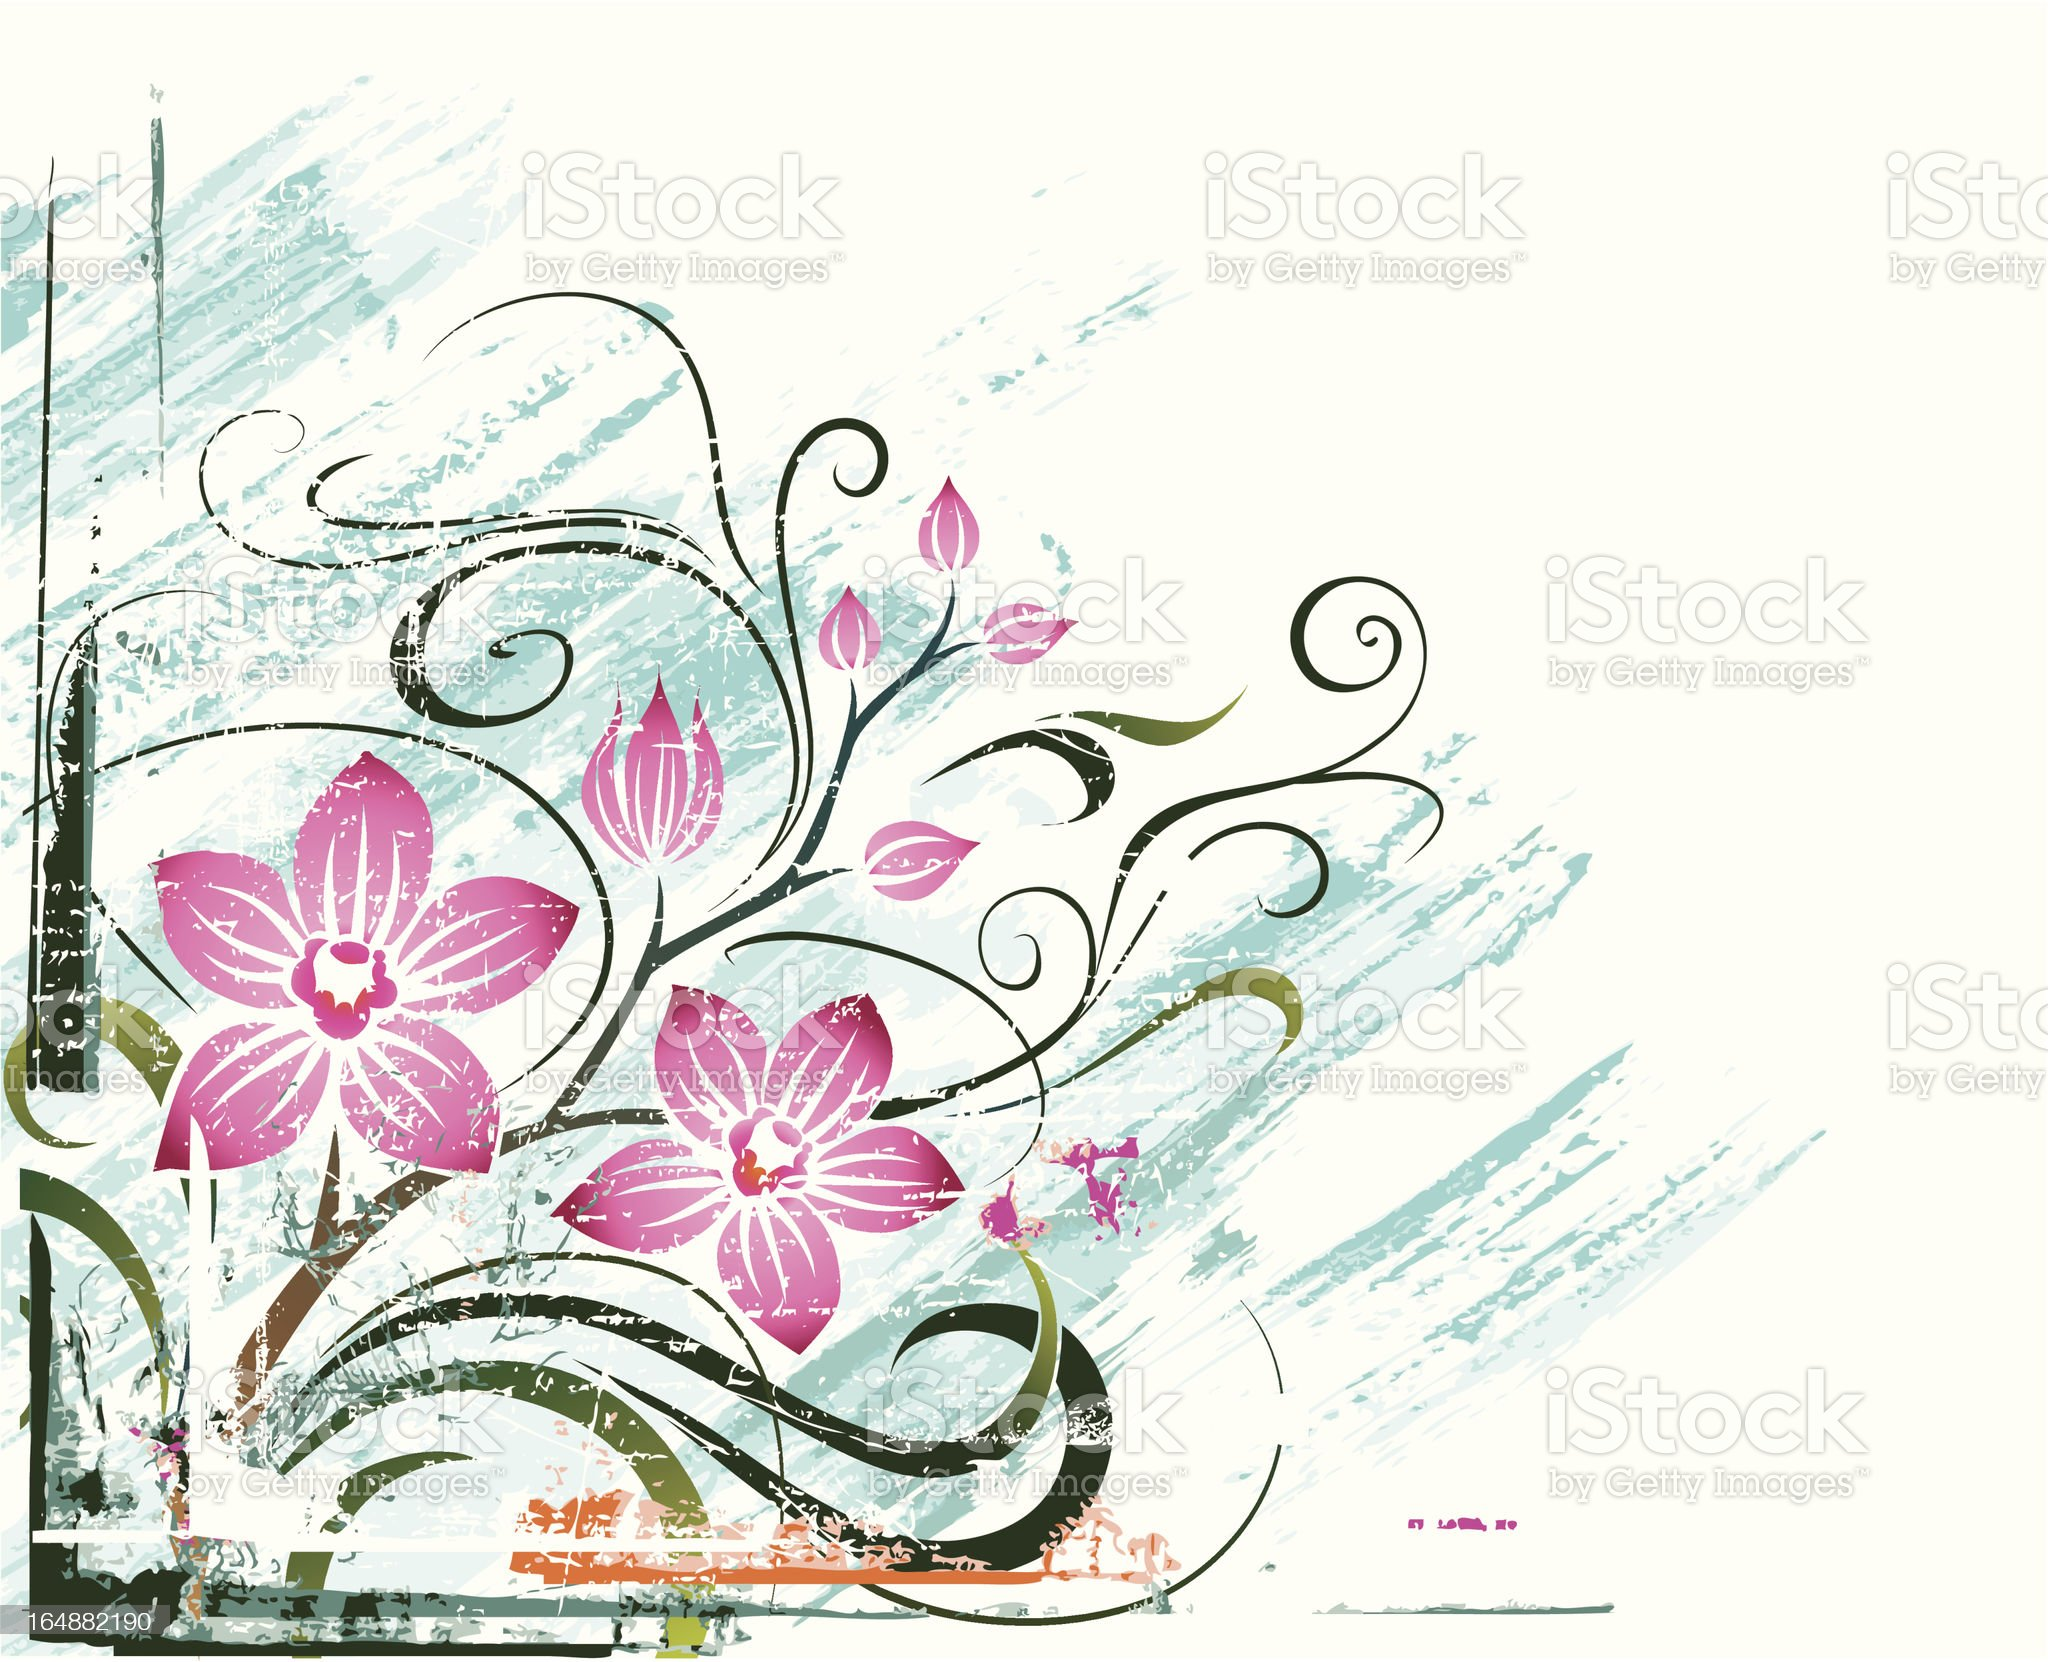 Orchid. Grunge background. royalty-free stock vector art